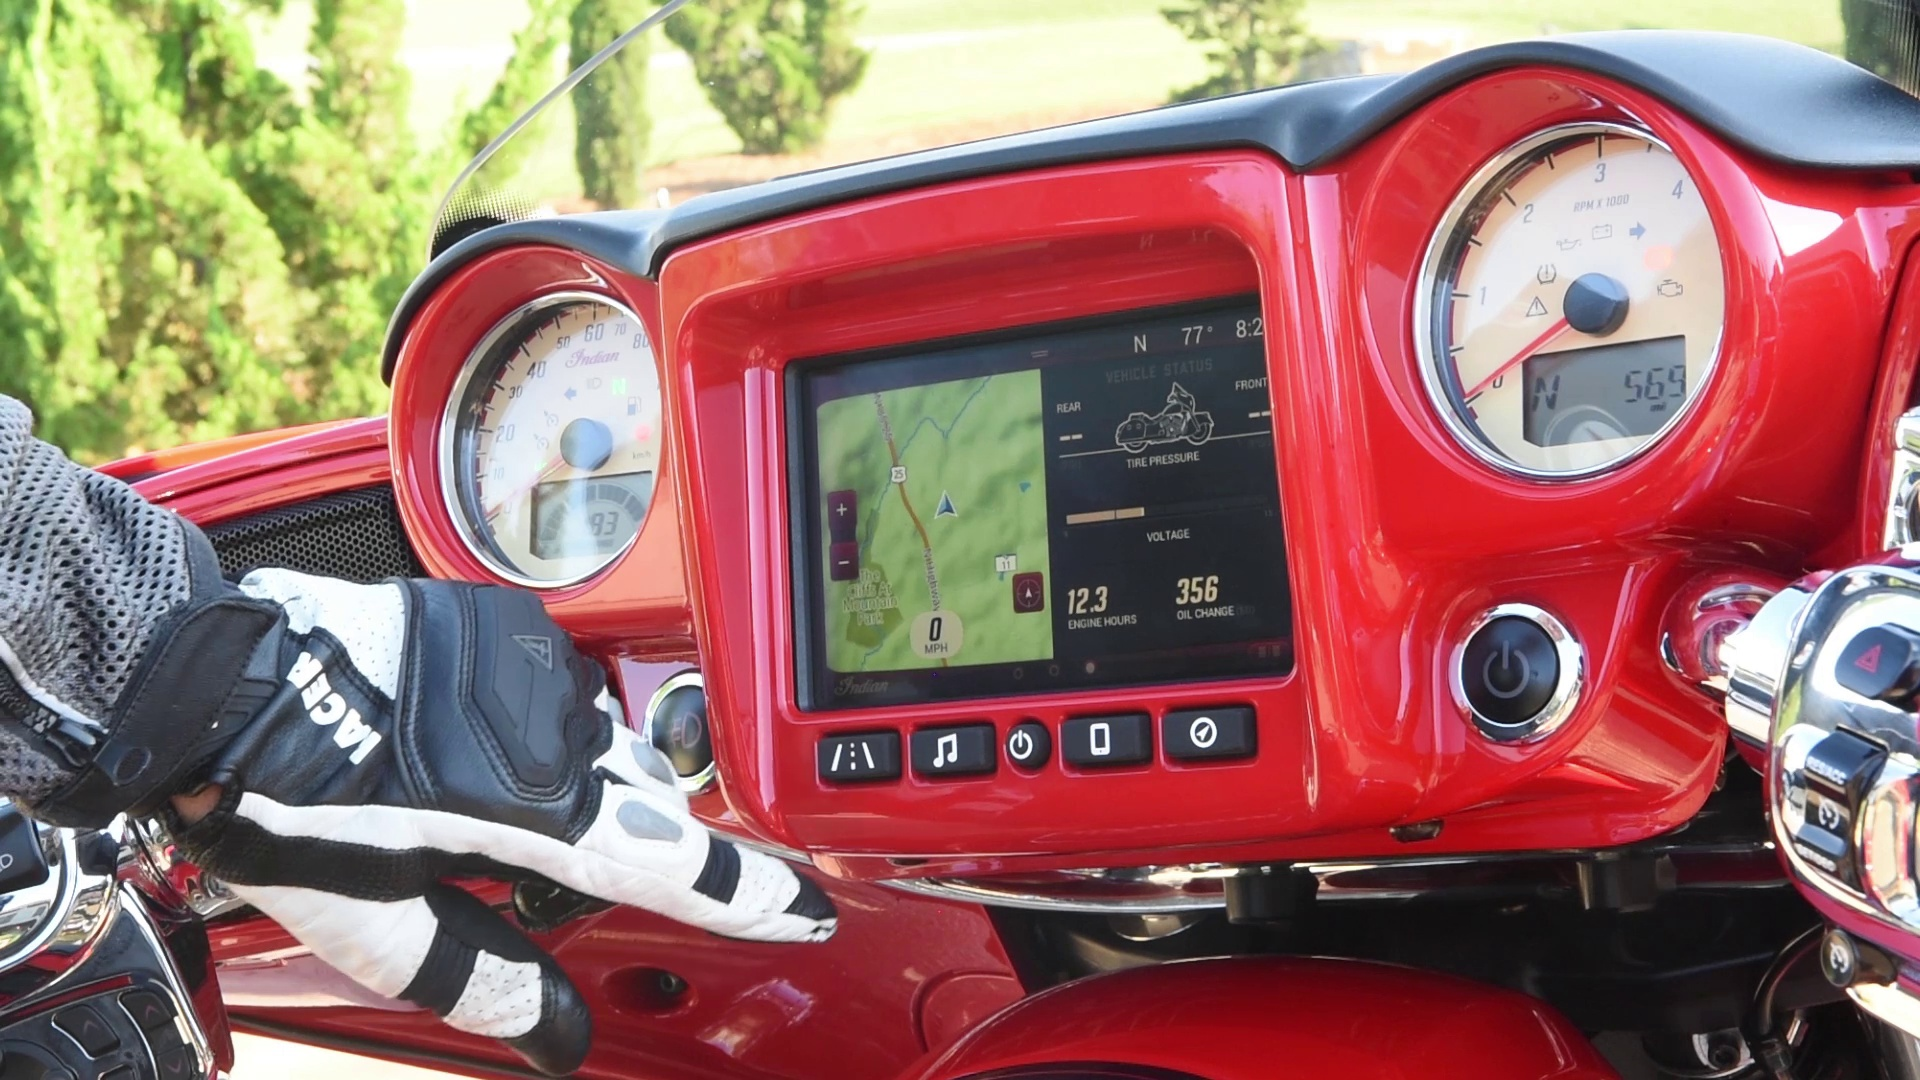 The Indian Motorcycle Ride Command System